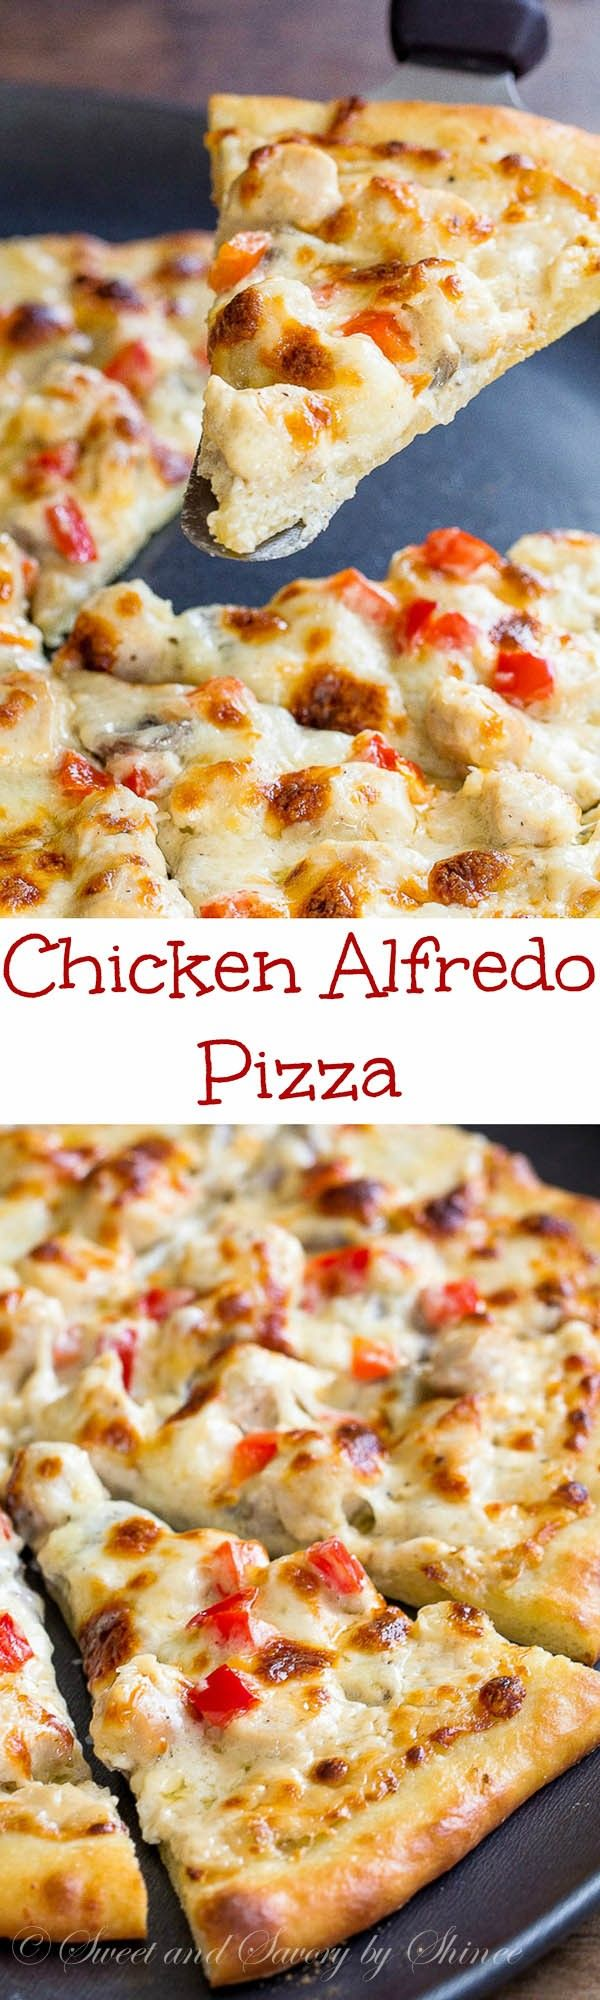 Tips and tricks for delicious thin crust pizza with creamy cheesy chicken alfredo topping.